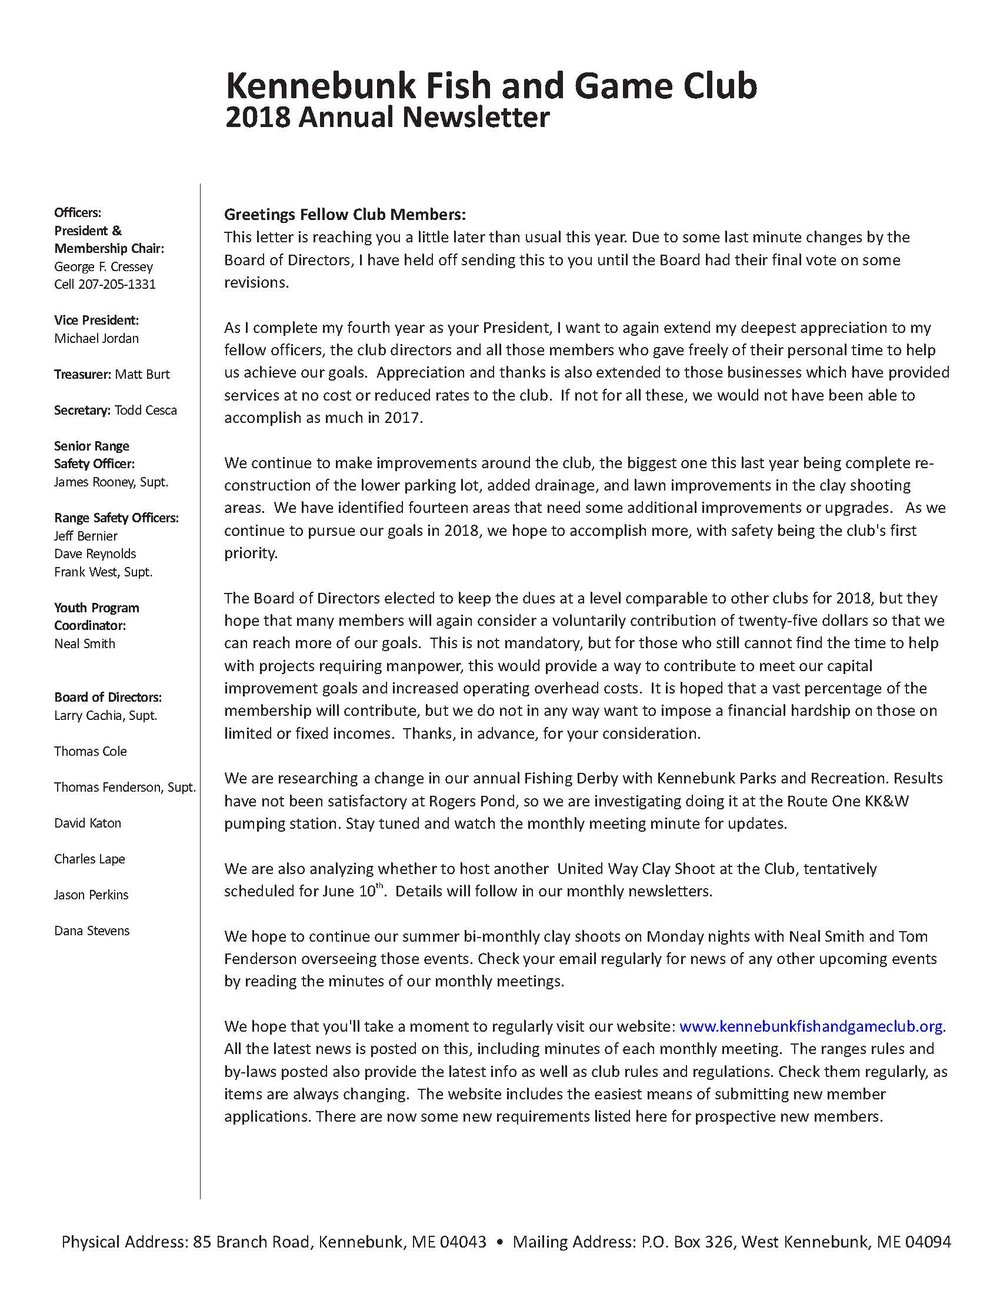 Kennebunk Fish & Game 2018  Newsletter 021218_Page_1.jpg